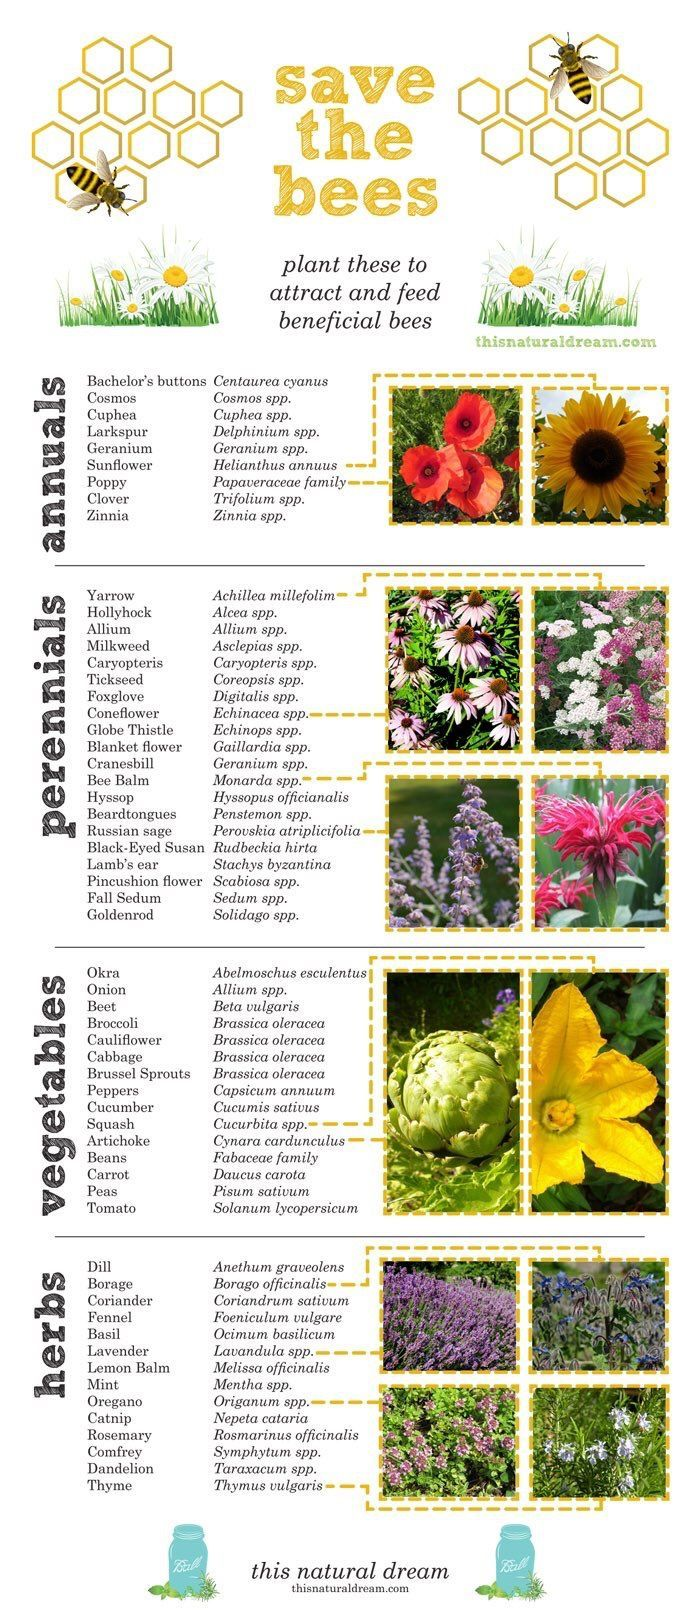 What to plant for beneficial bees #kräutergartendesign